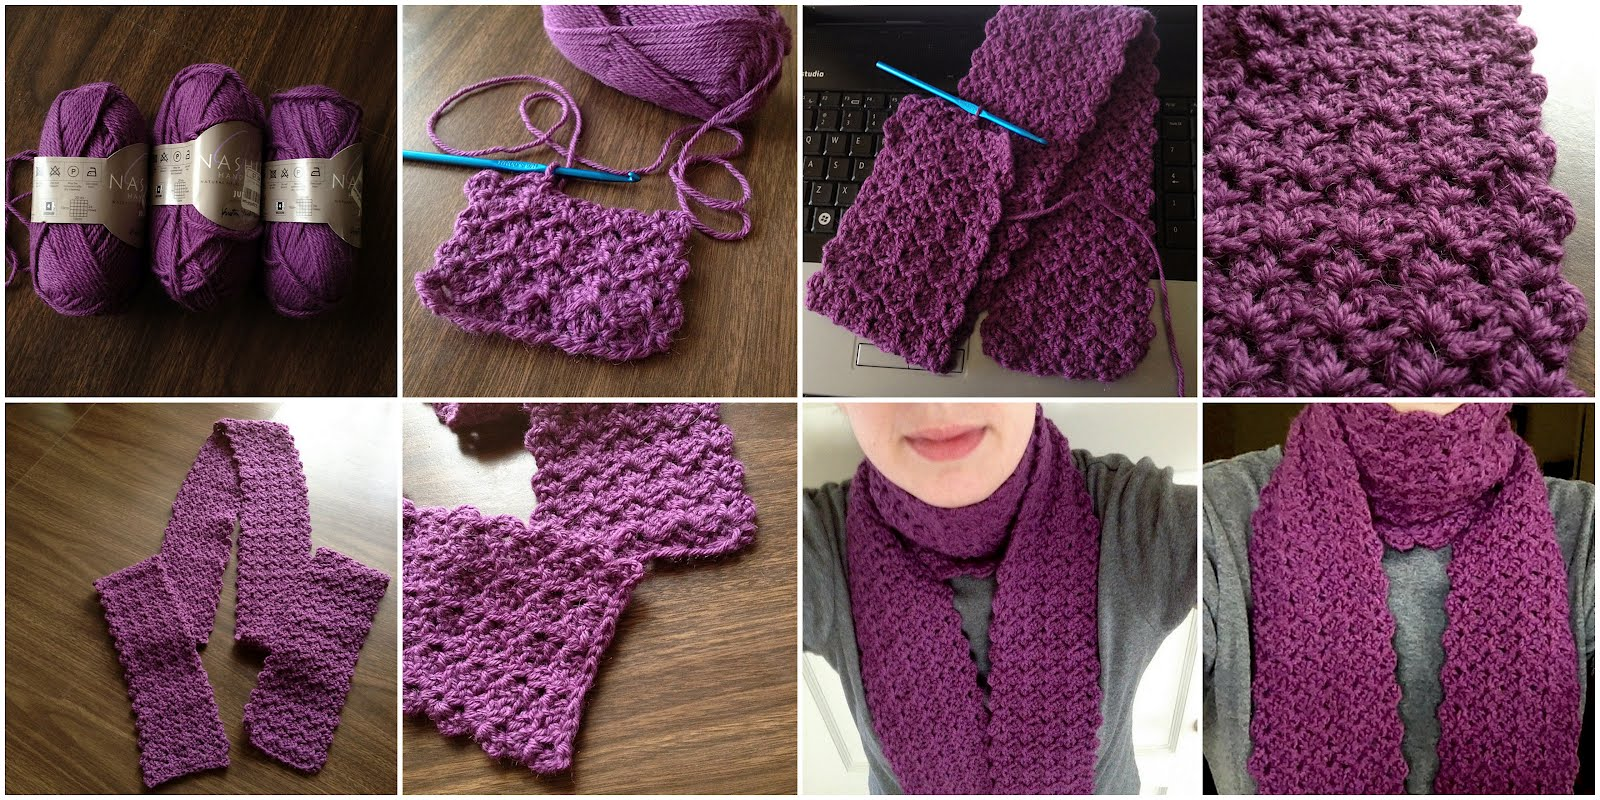 Crocheting Blind: Crochet Project; Surreybelle Scarf